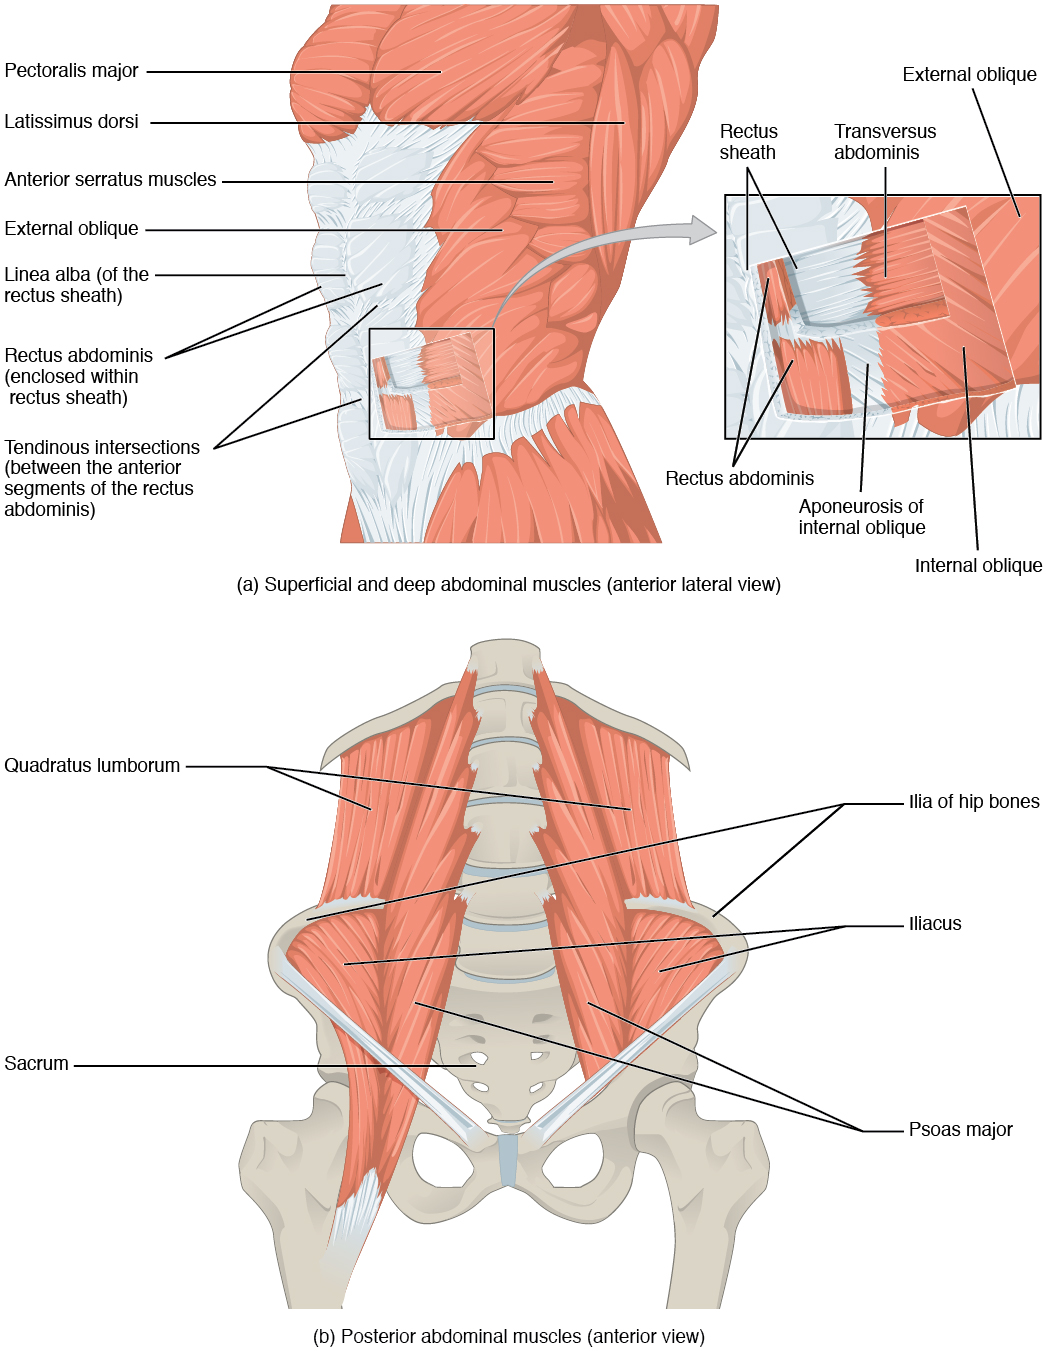 Axial Muscles of the Abdominal Wall and Thorax - Anatomy ...